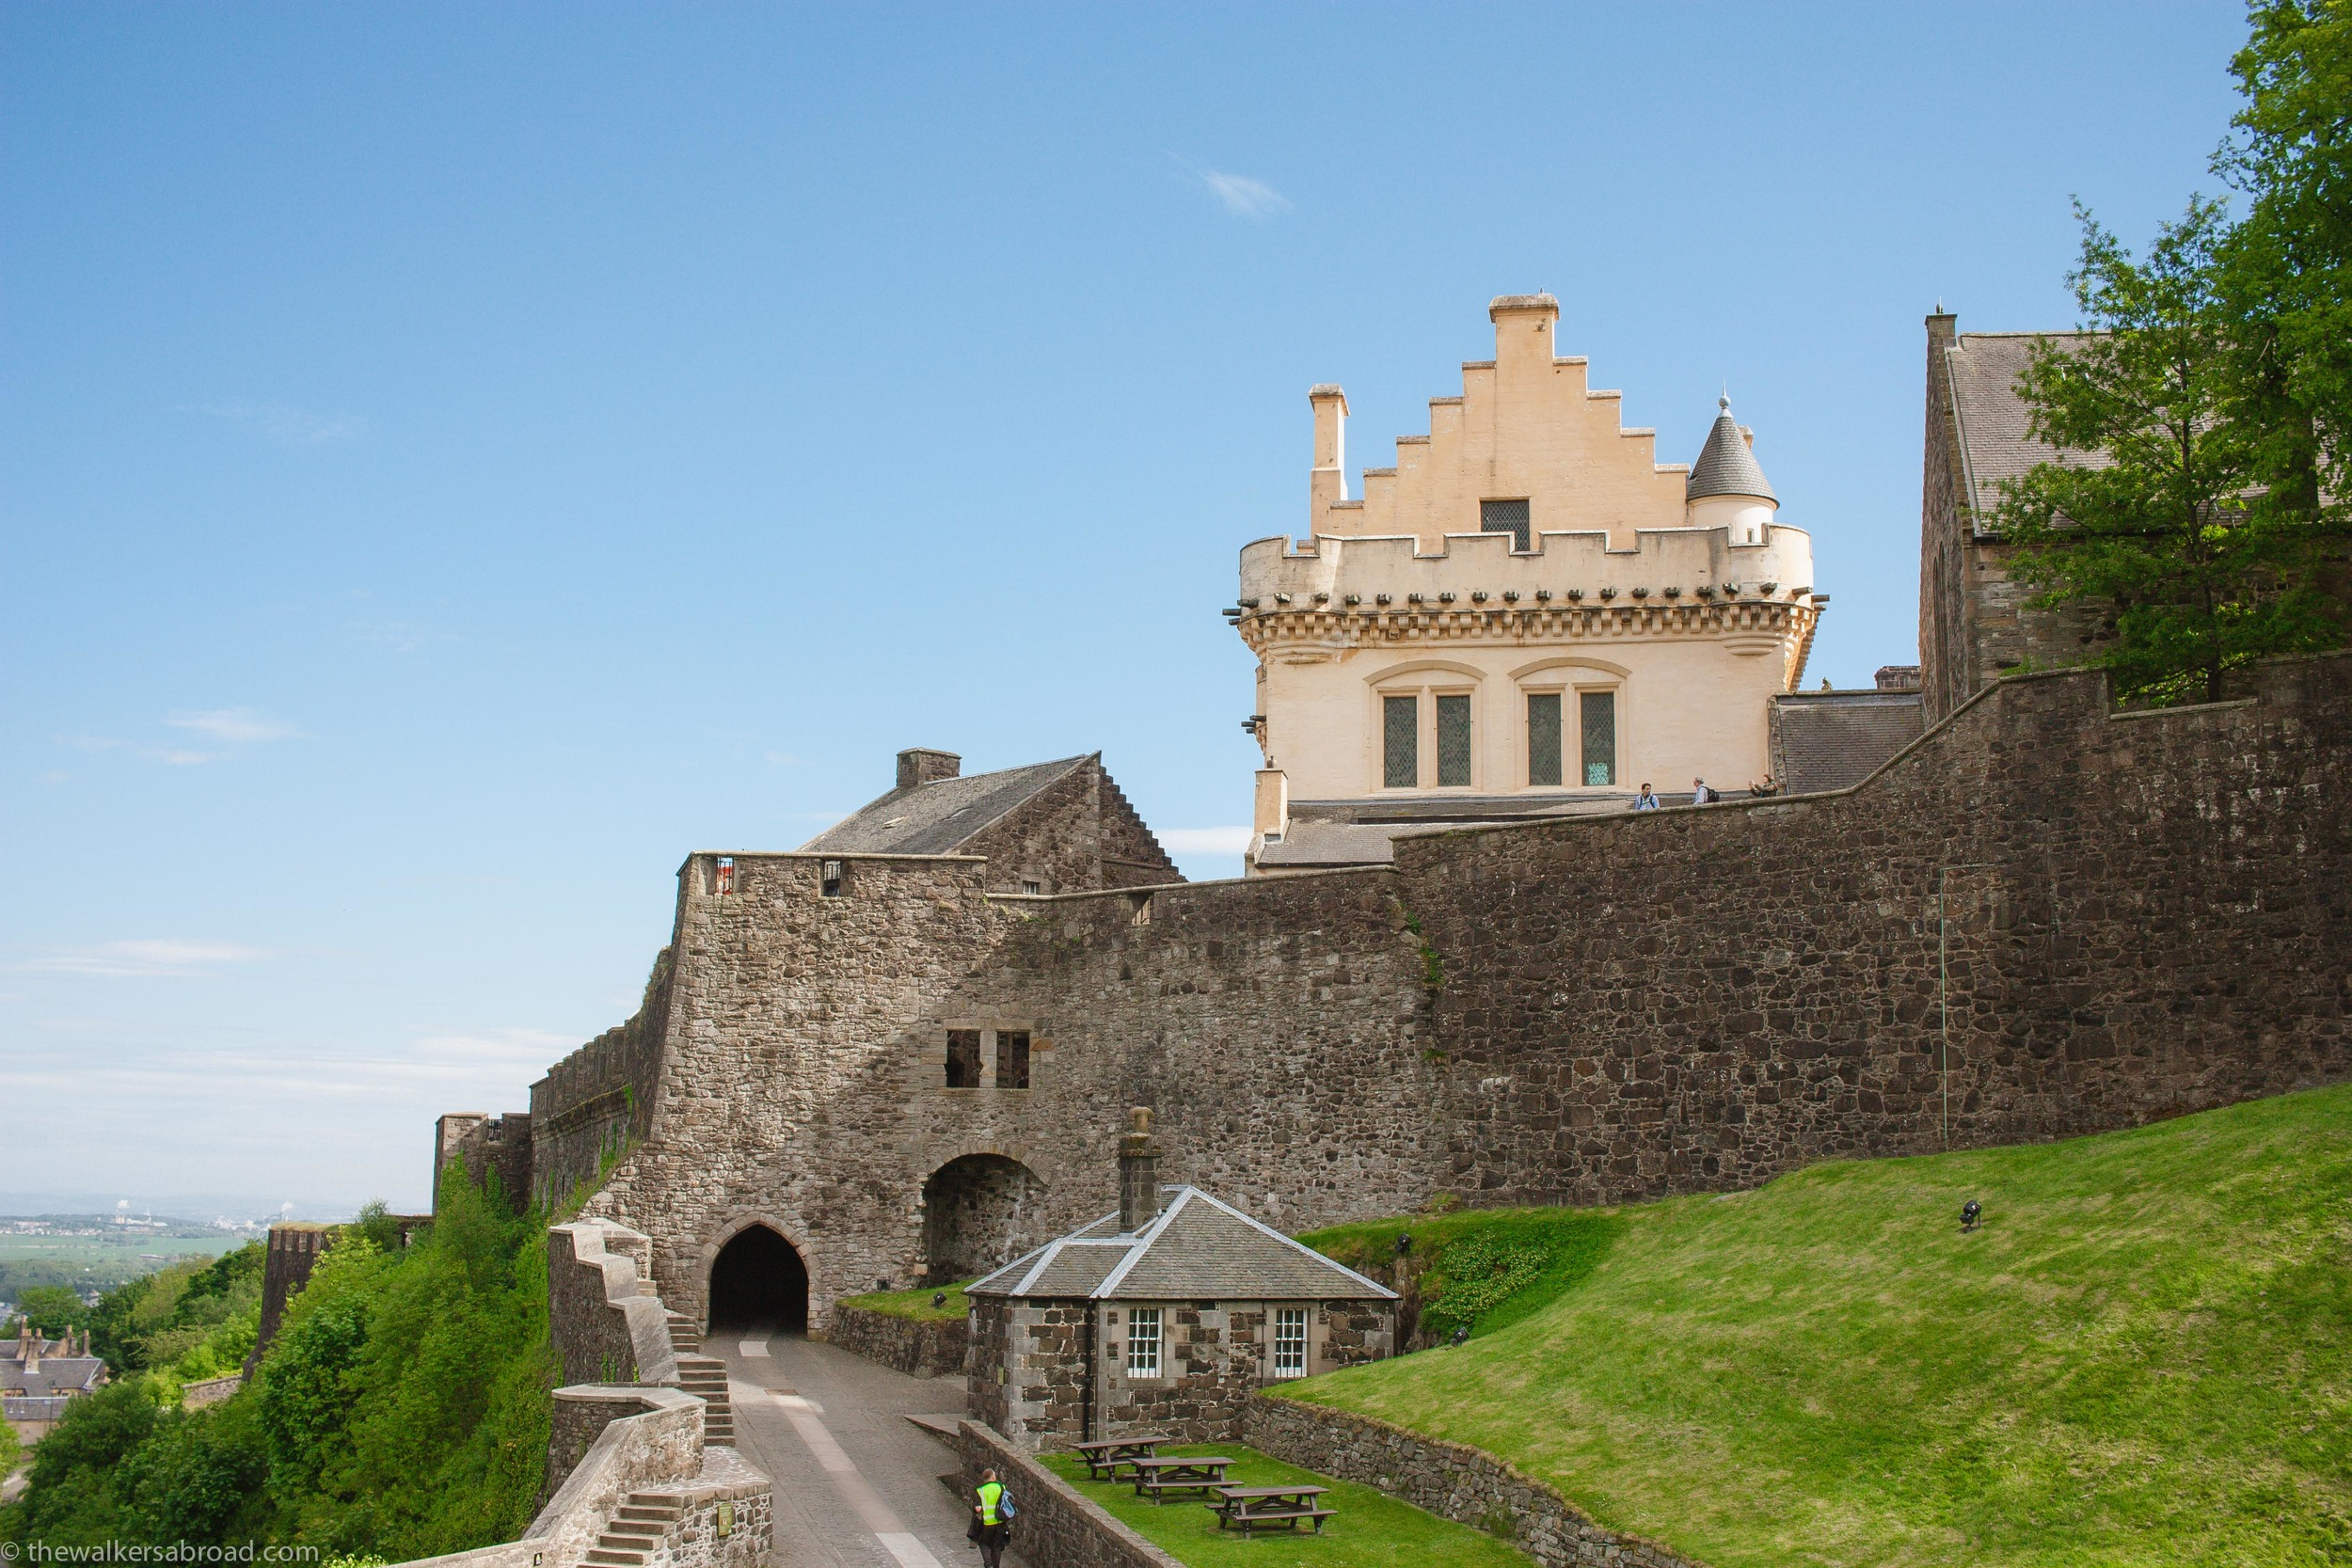 The North Gate dates from the 1380s.